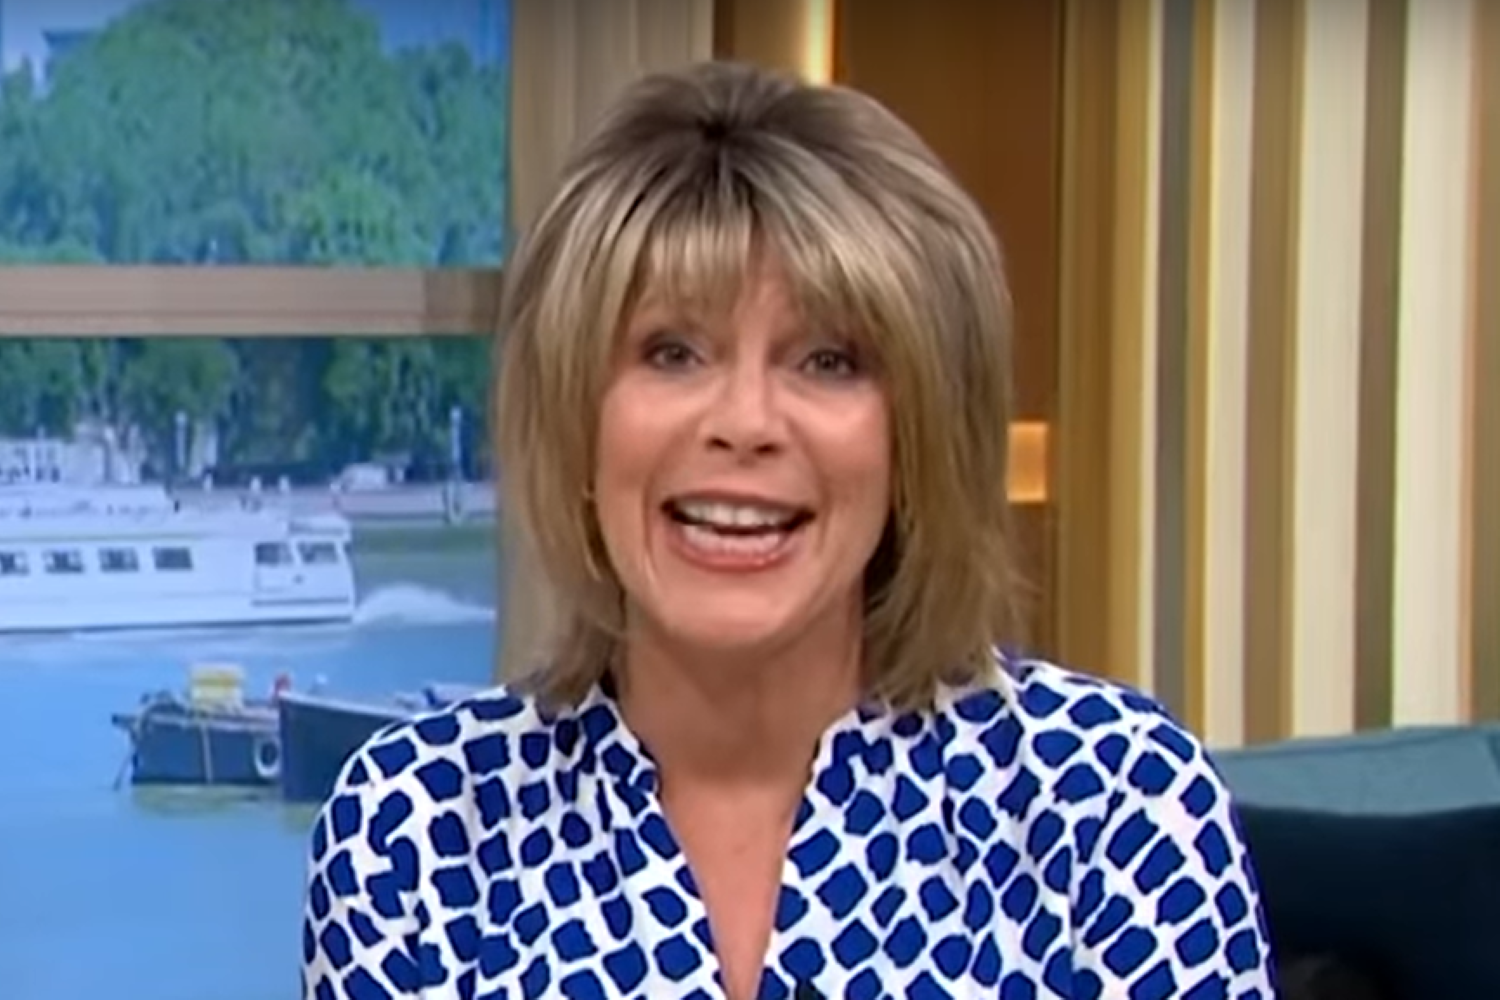 Ruth Langsford shares her joy as she gets hair done on 'Super Saturday'